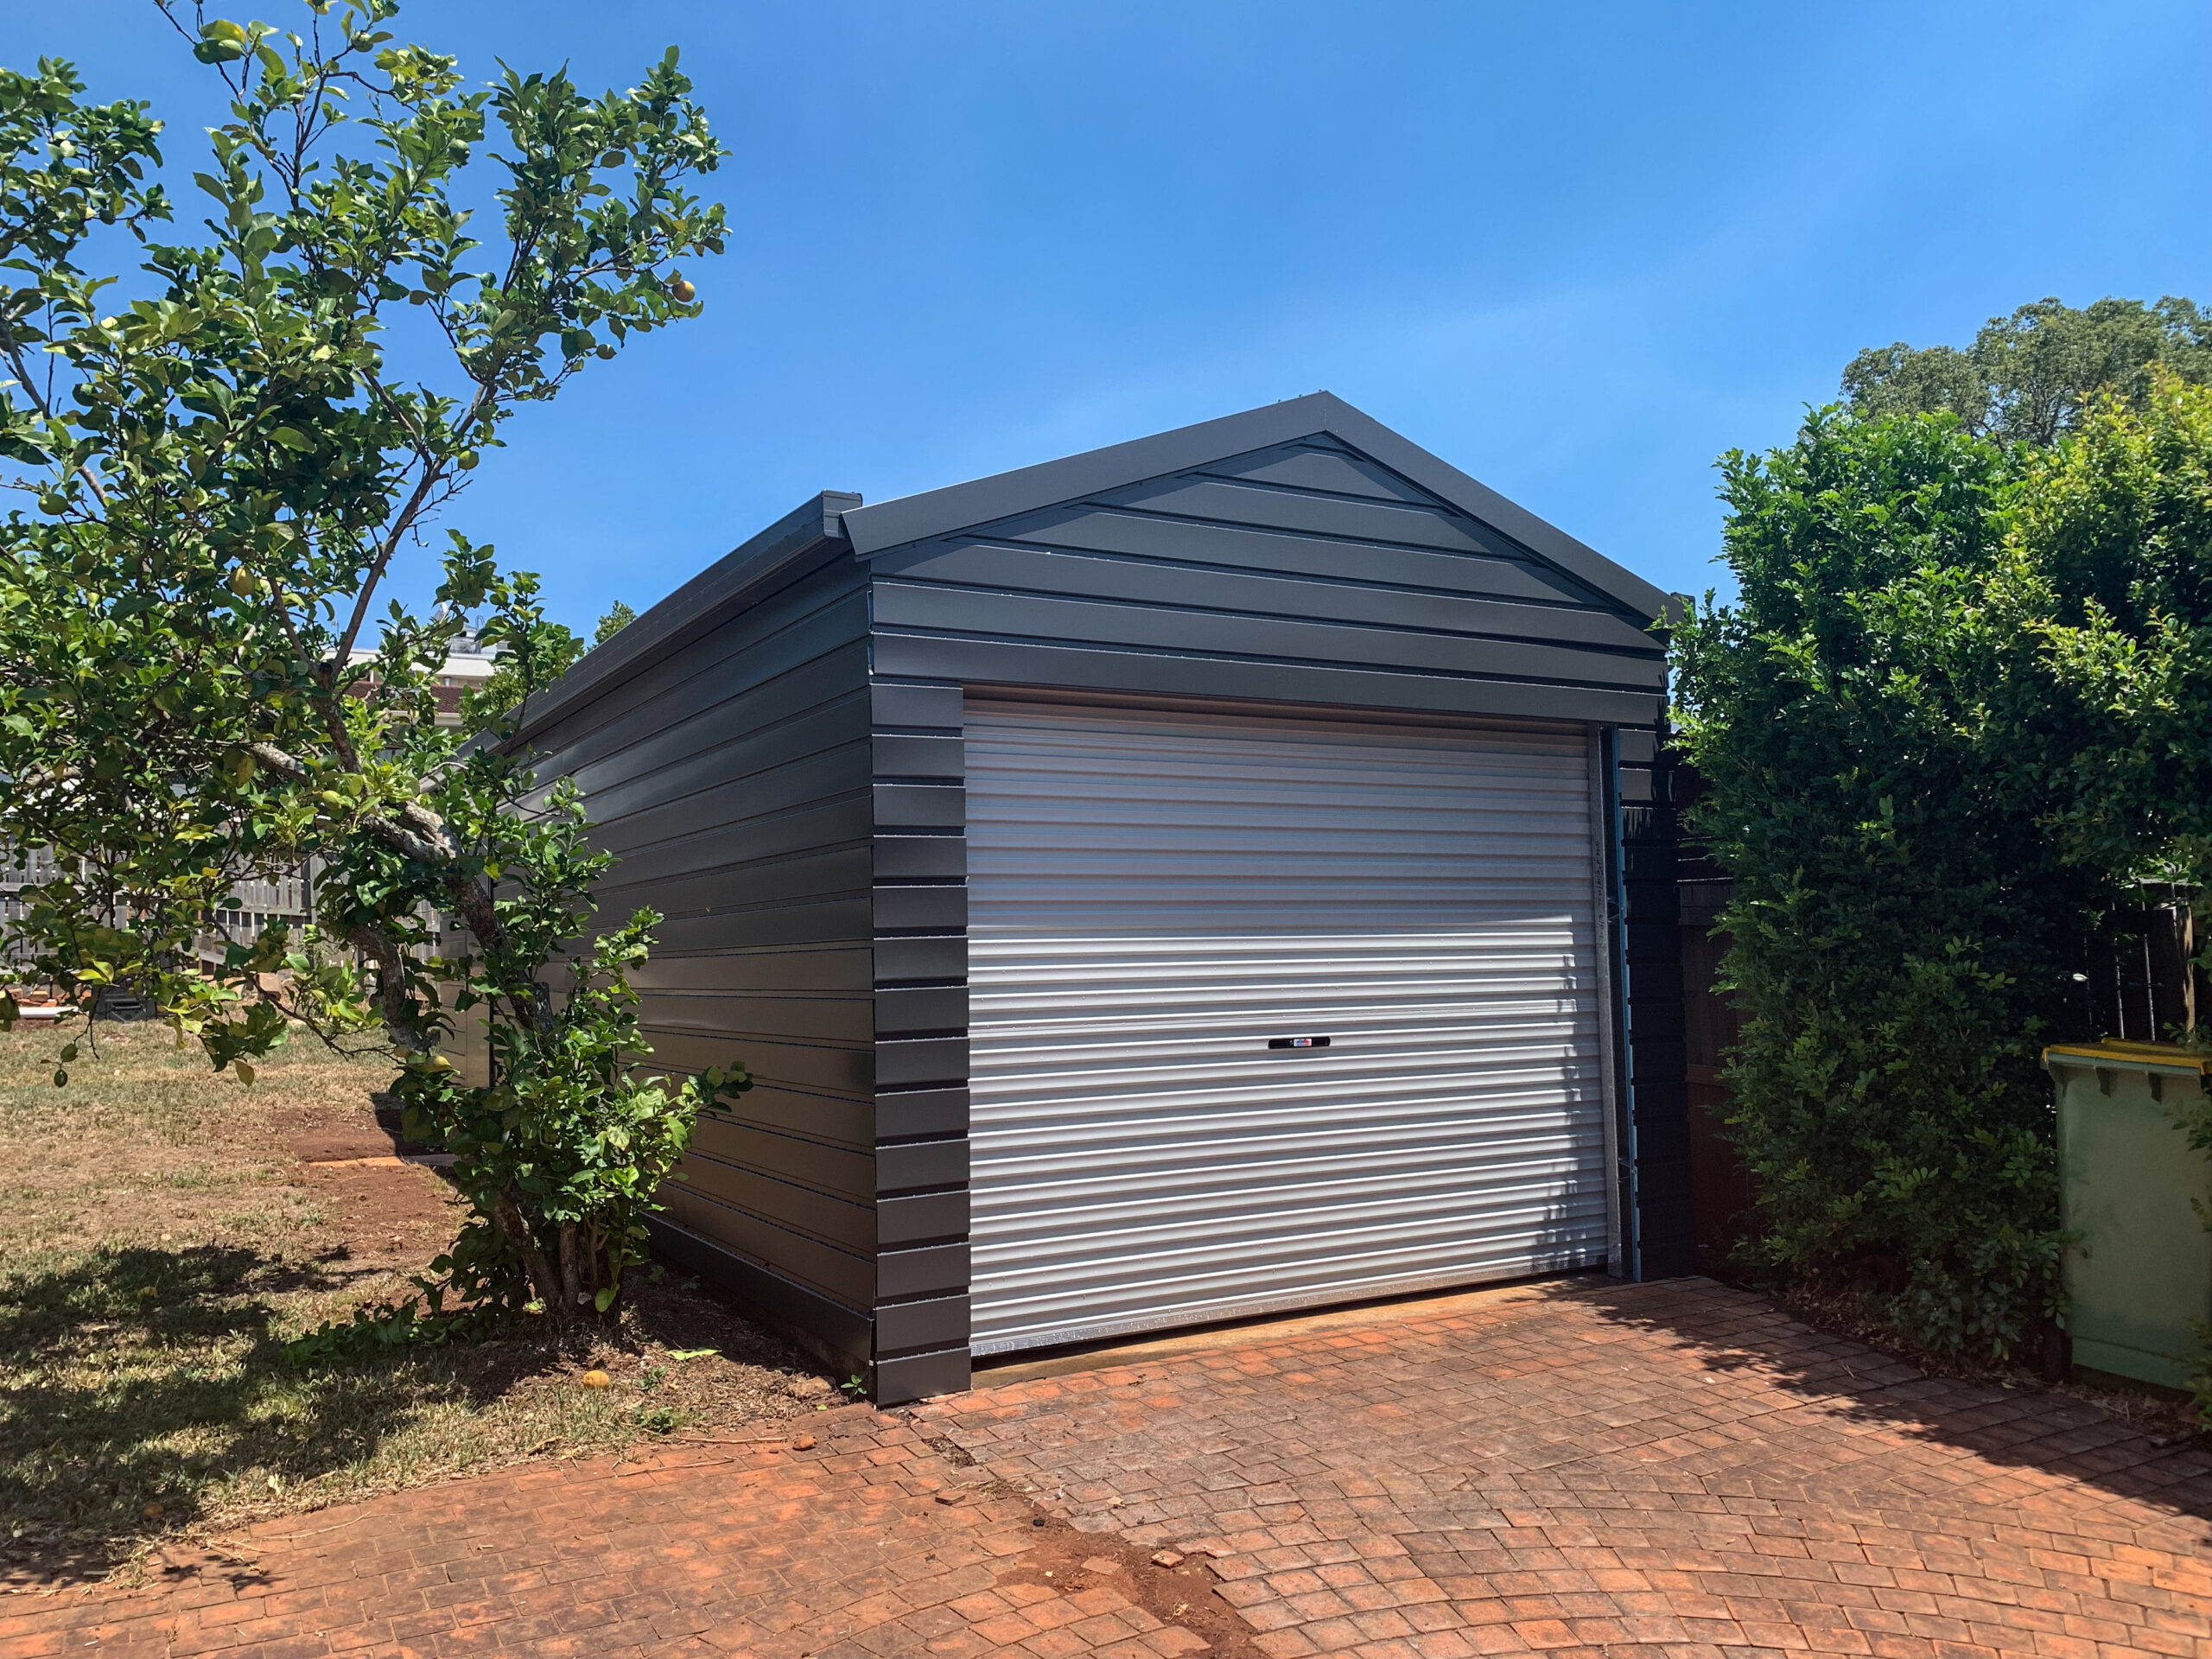 New Shed in a Backyard